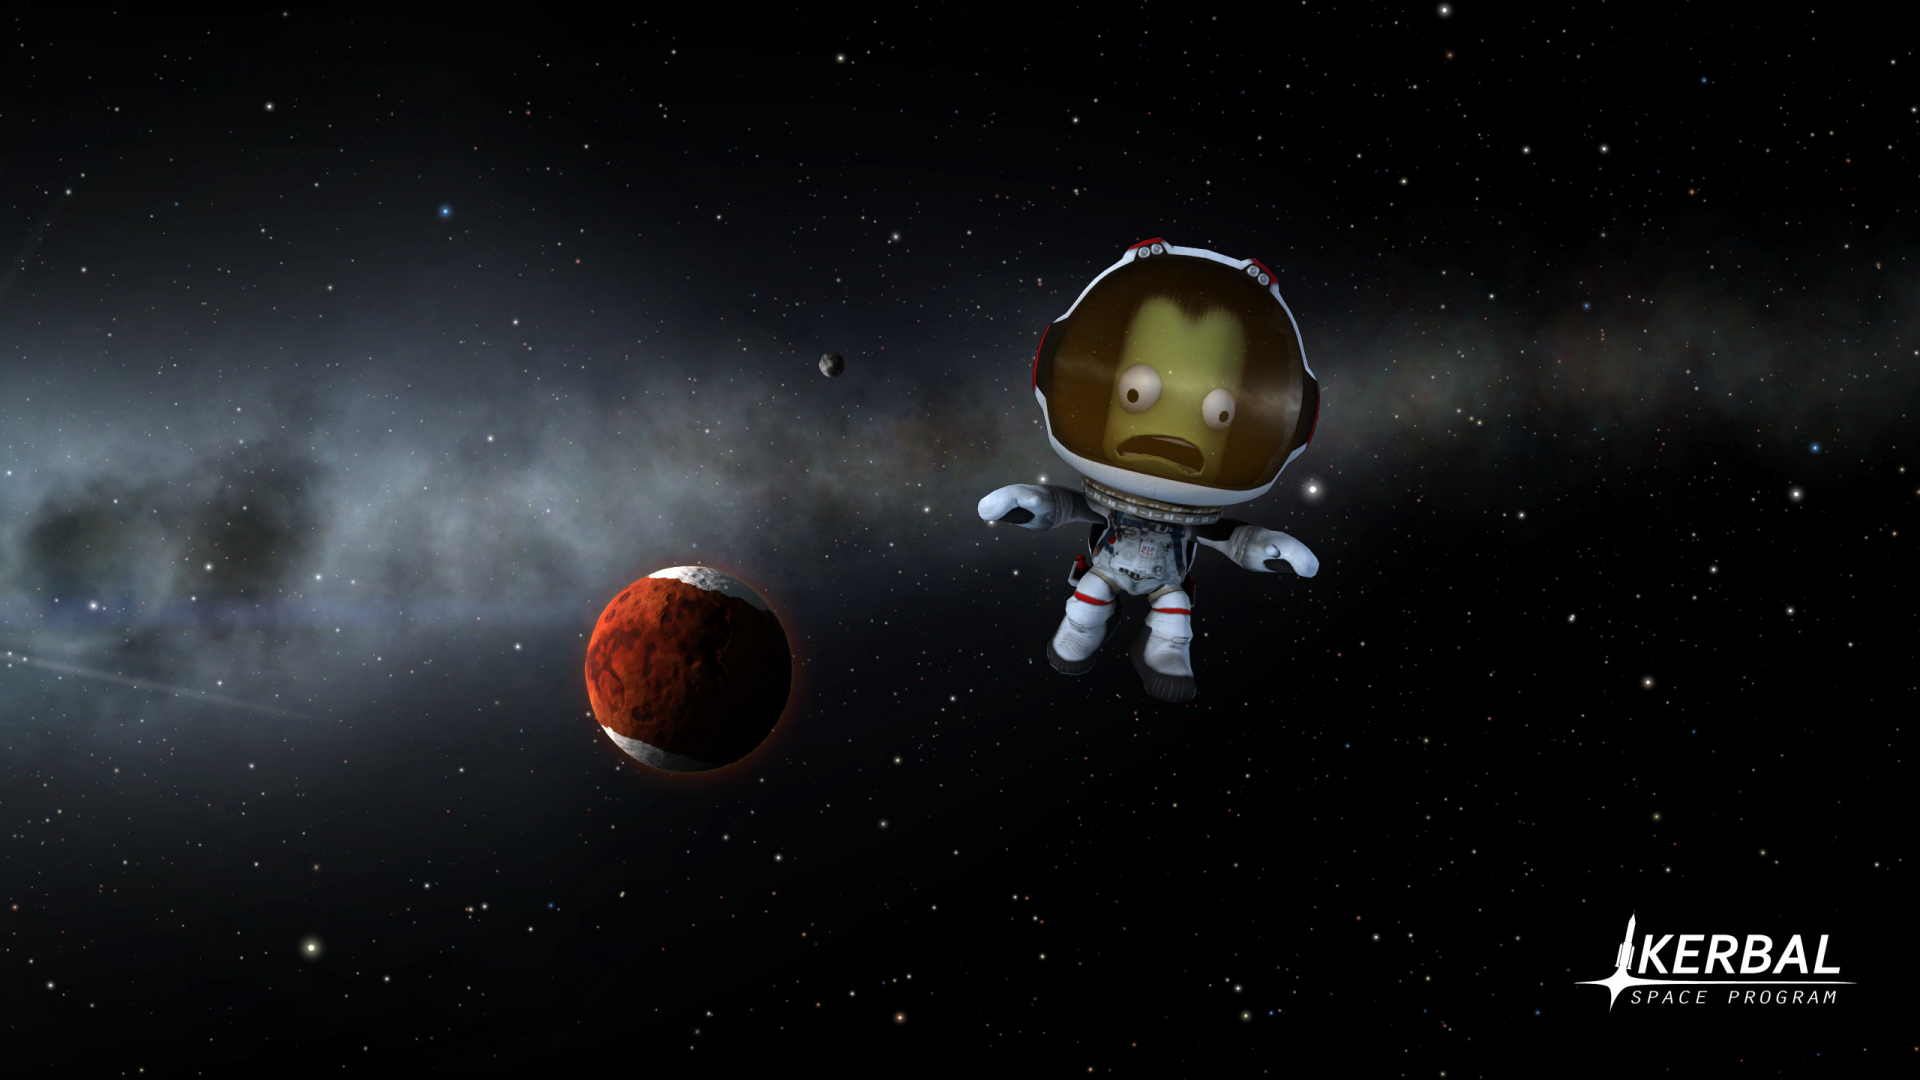 Free Download Super Hd Kerbal Space Program Pictures For